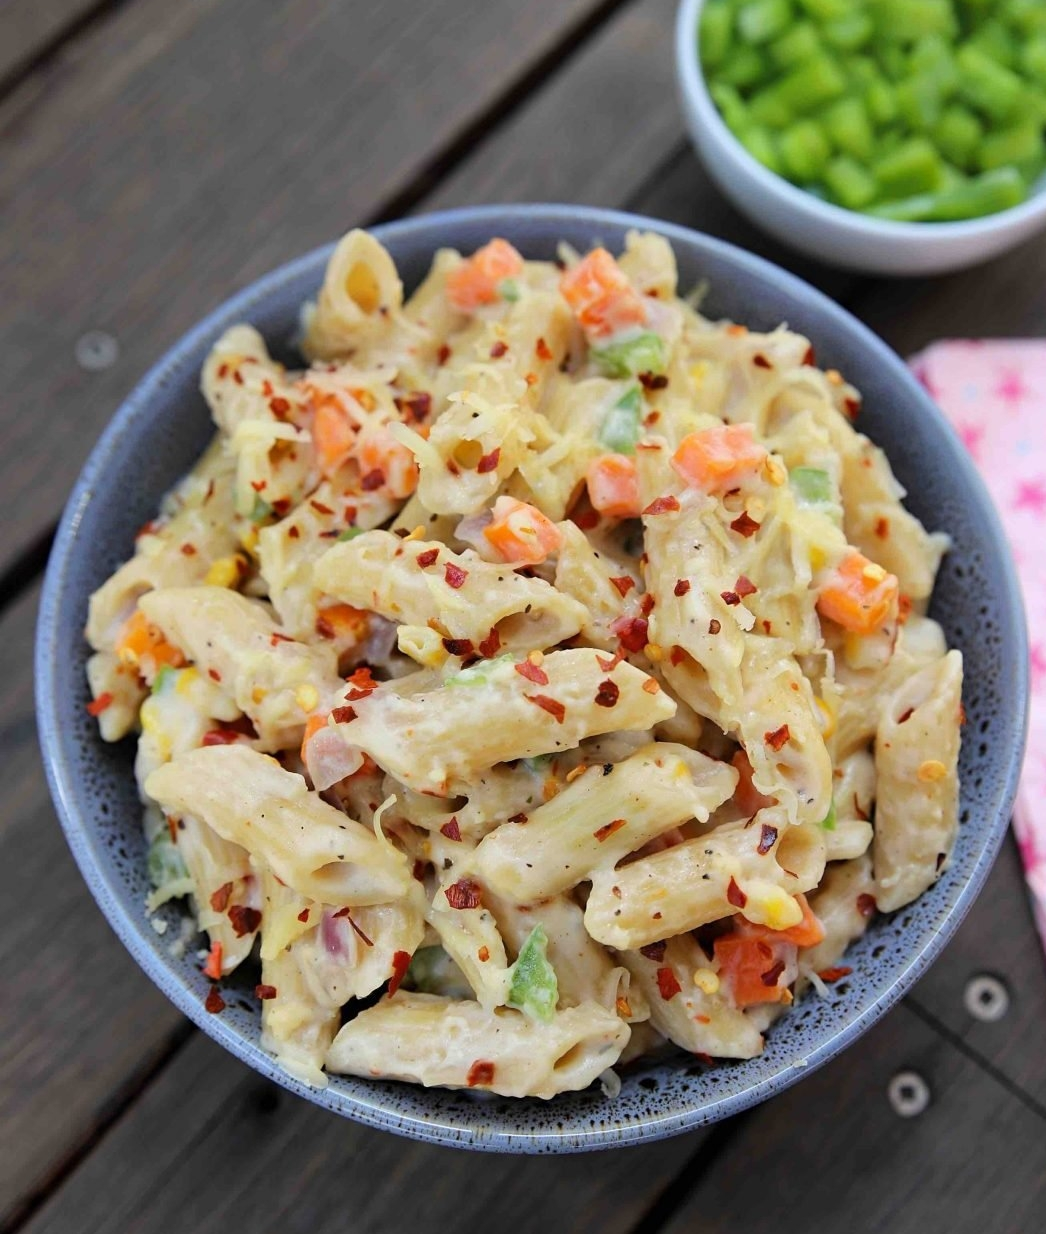 mayo pasta with chopped vegetables and herbs